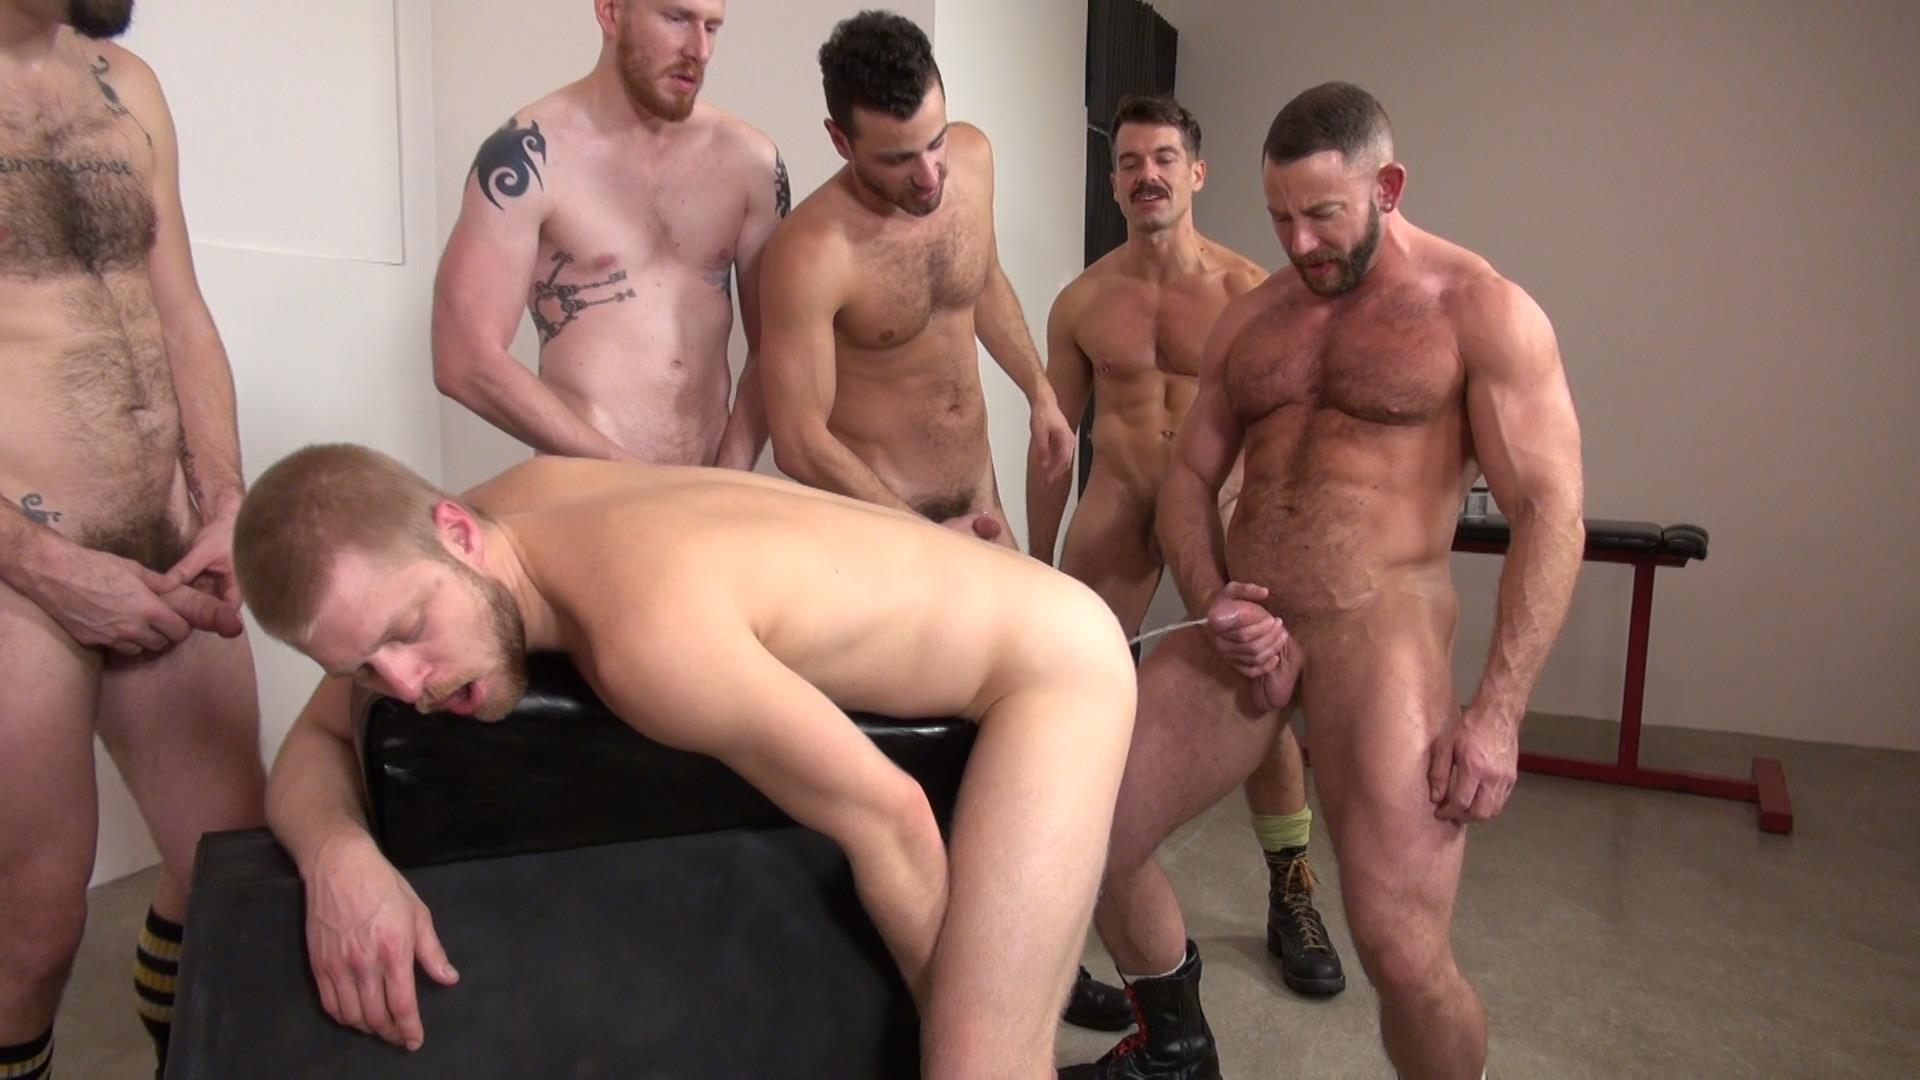 Raw and Rough Bareback Gay Sex Orgy Amateur Gay Porn 03 Six Hairy Hung Guys Pounding A Bottom At A Bareback Sex Party